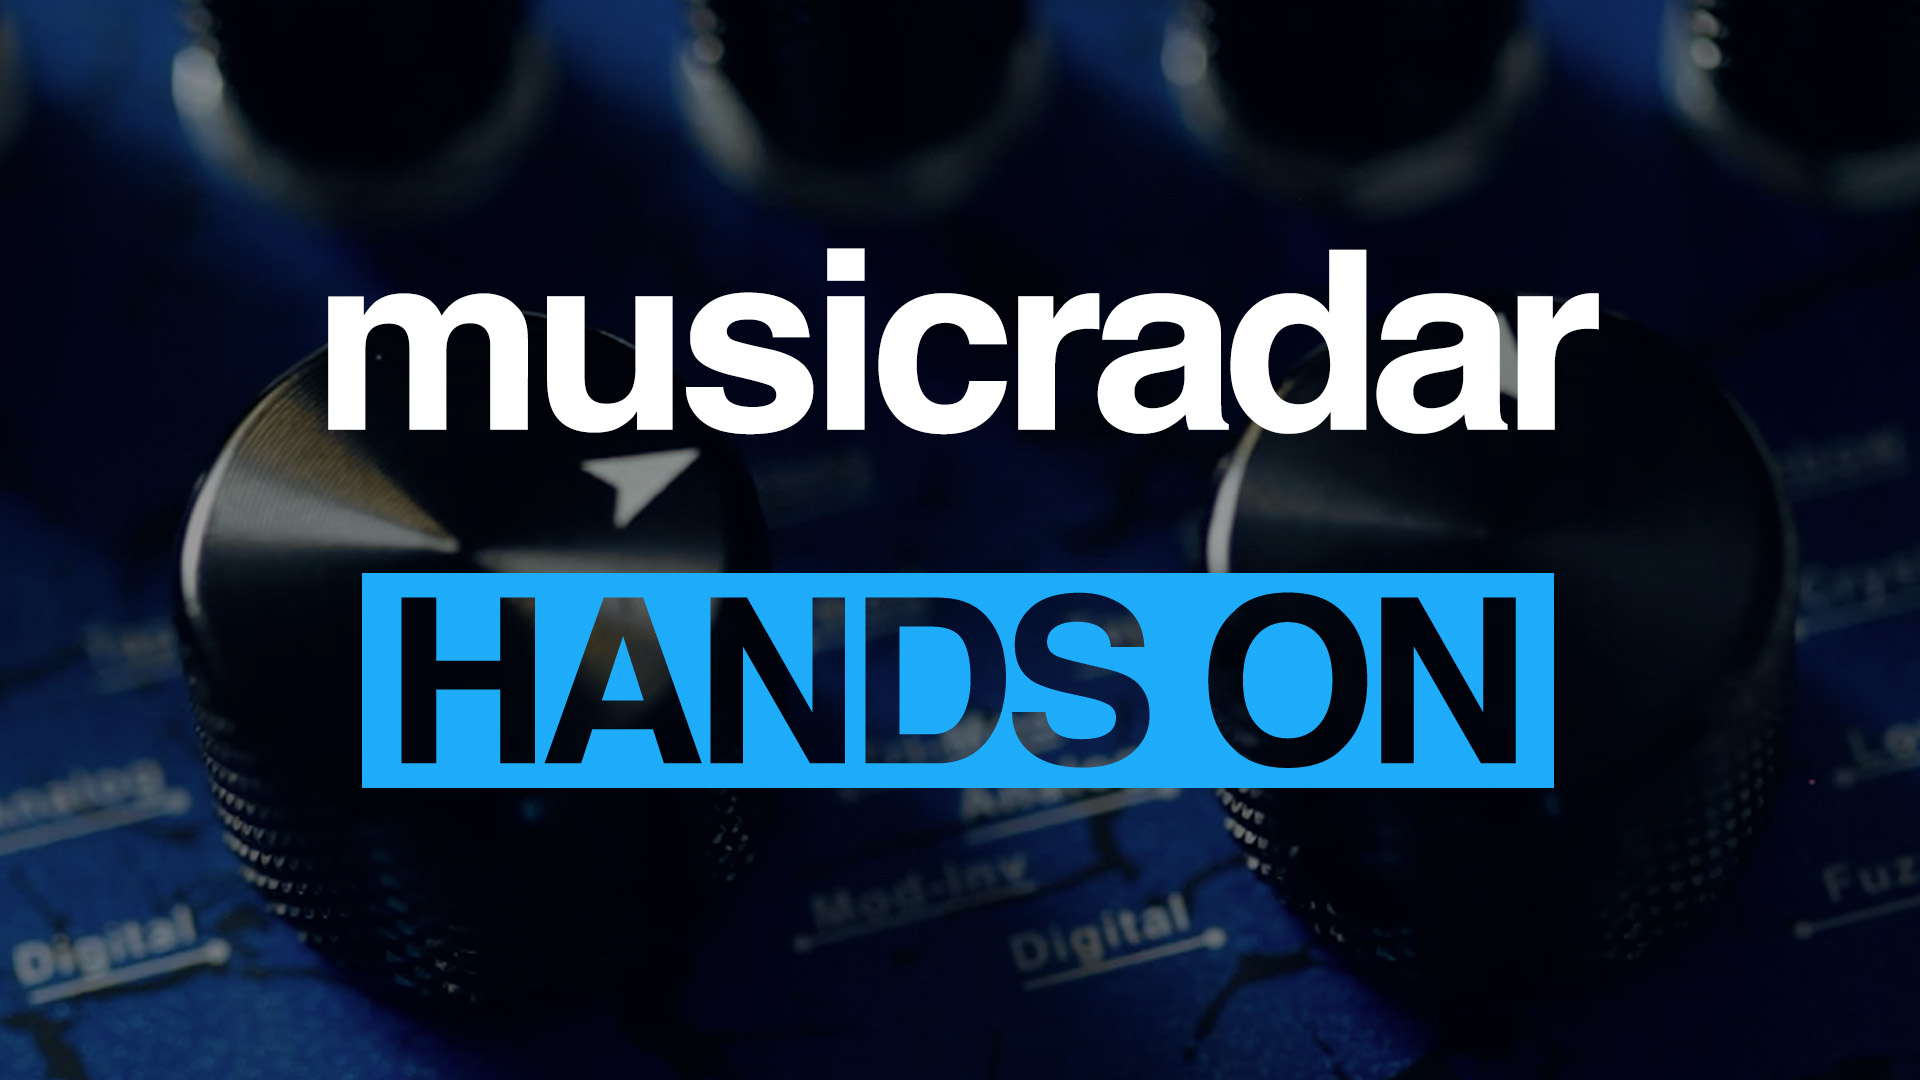 MusicRadar hands-on gear demos | MusicRadar